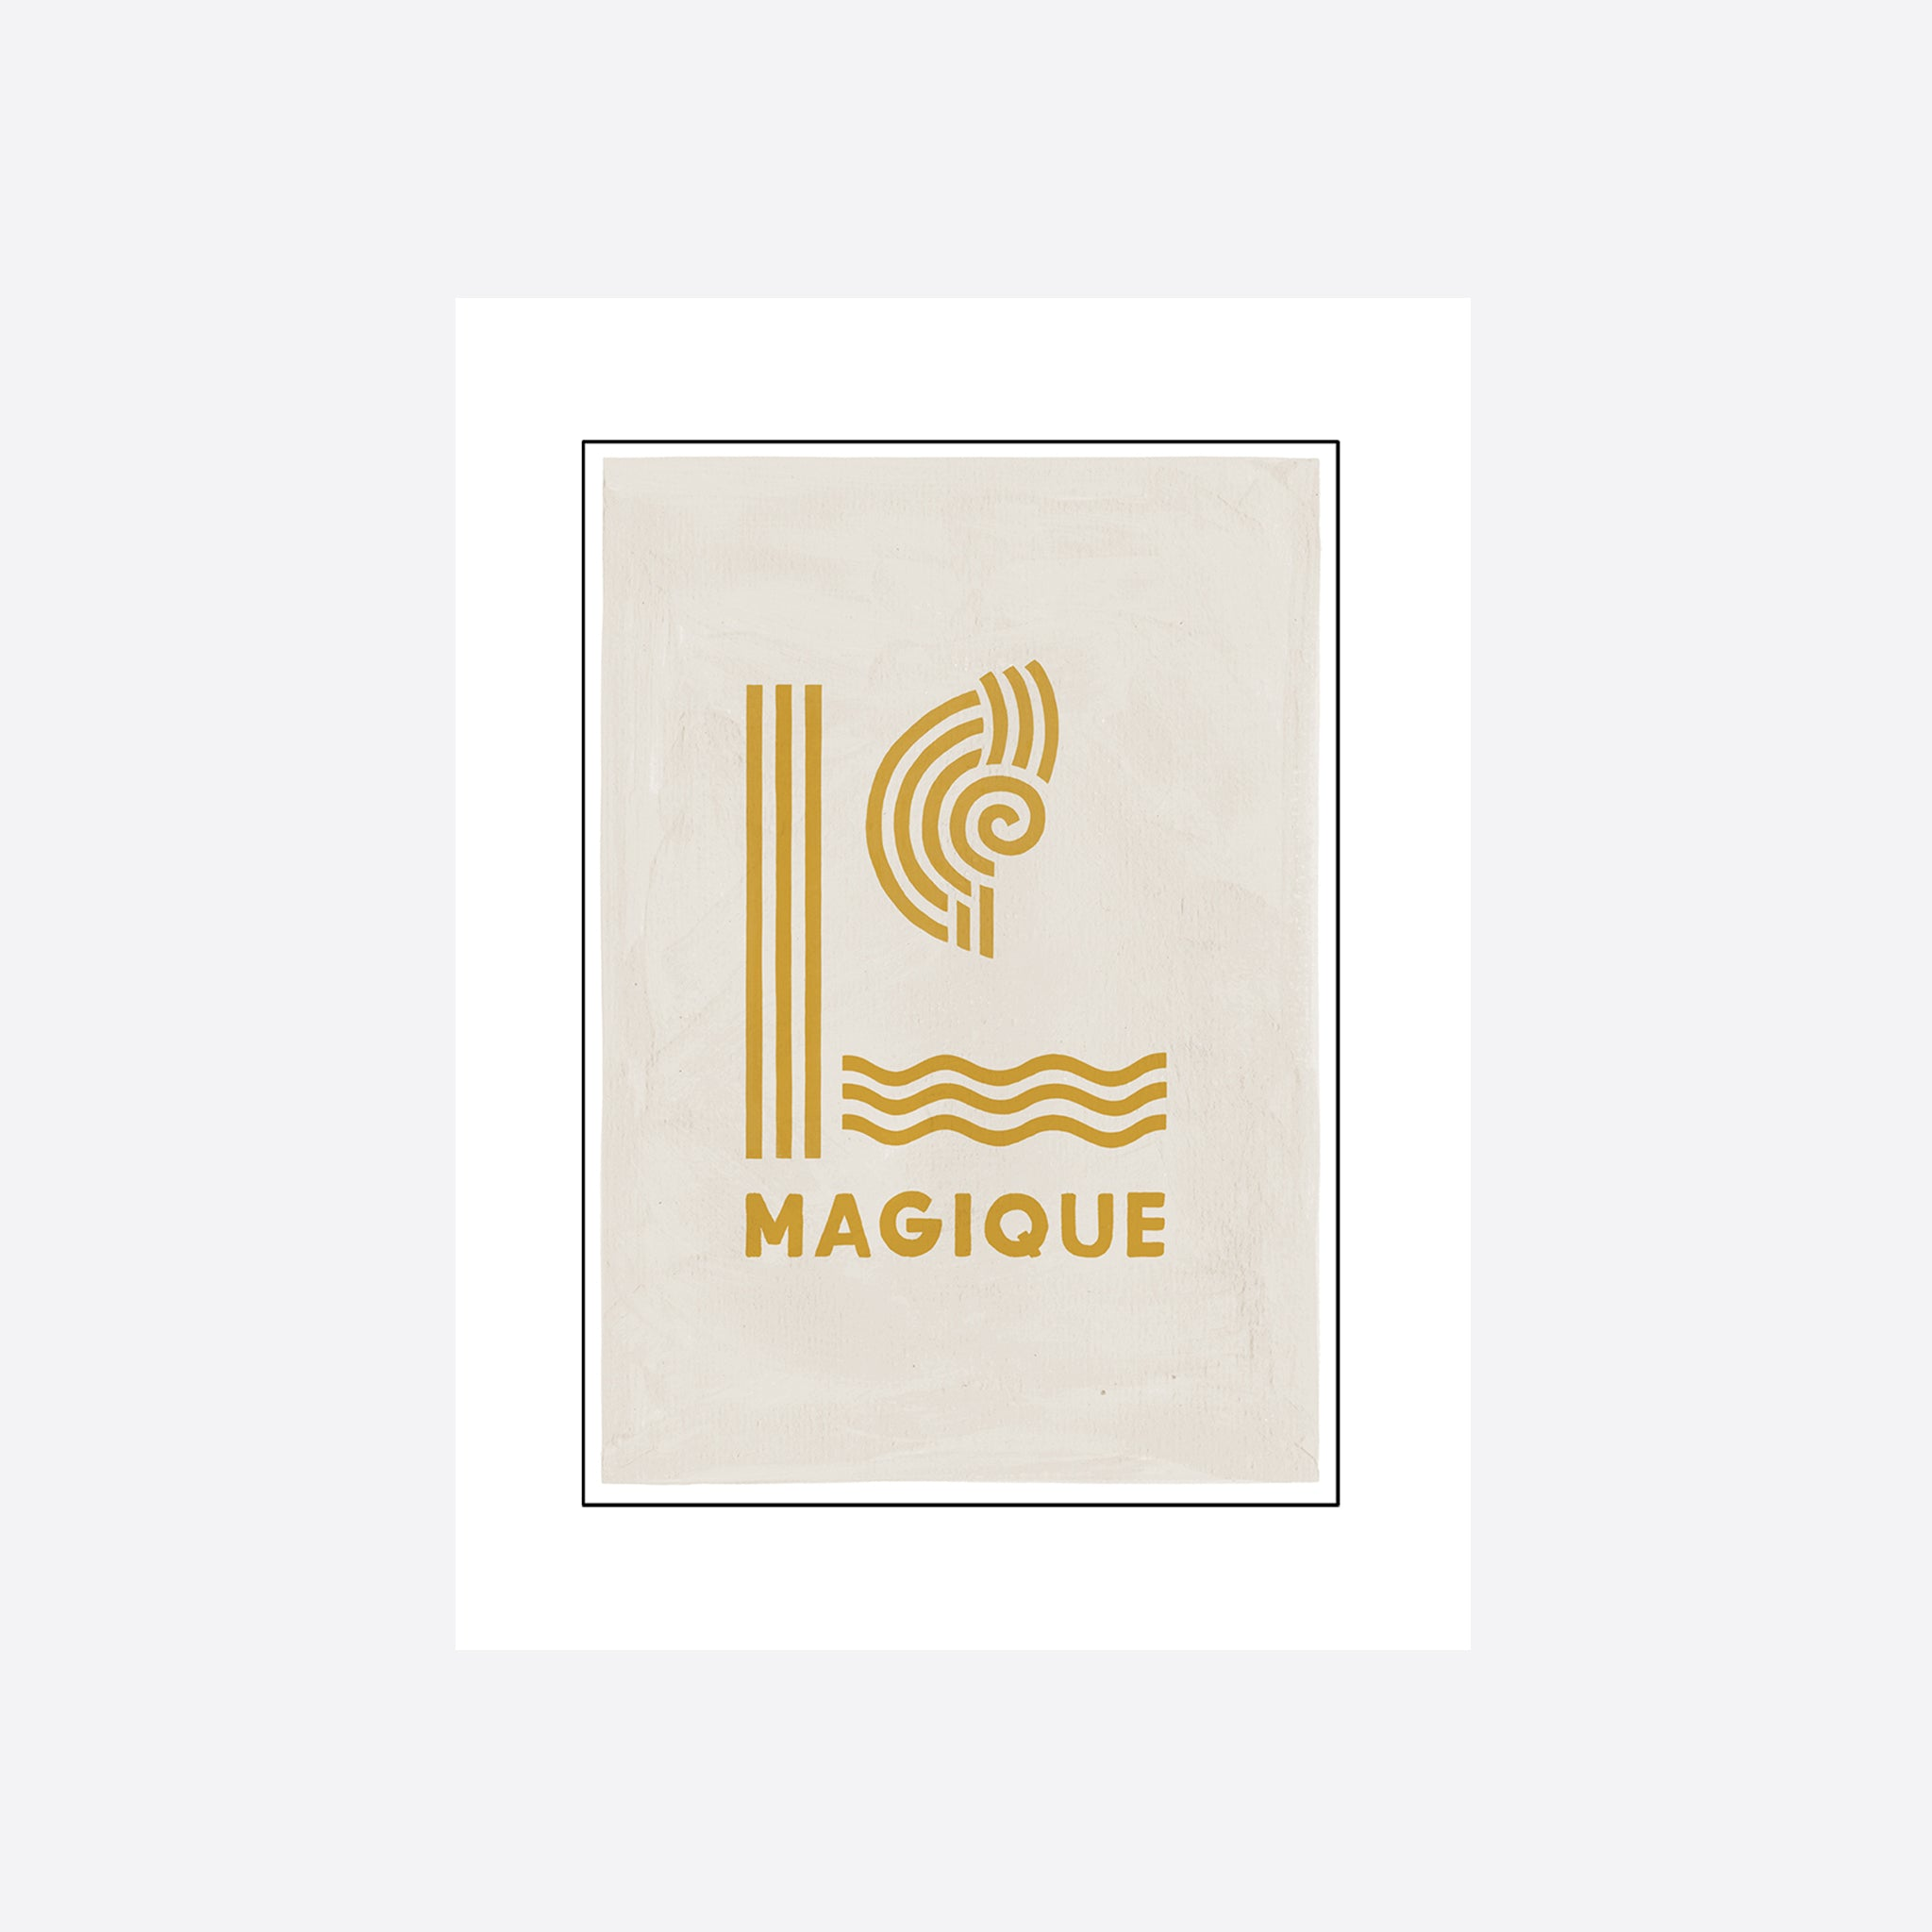 Hôtel Magique 'Yellow Magique' Greeting Card